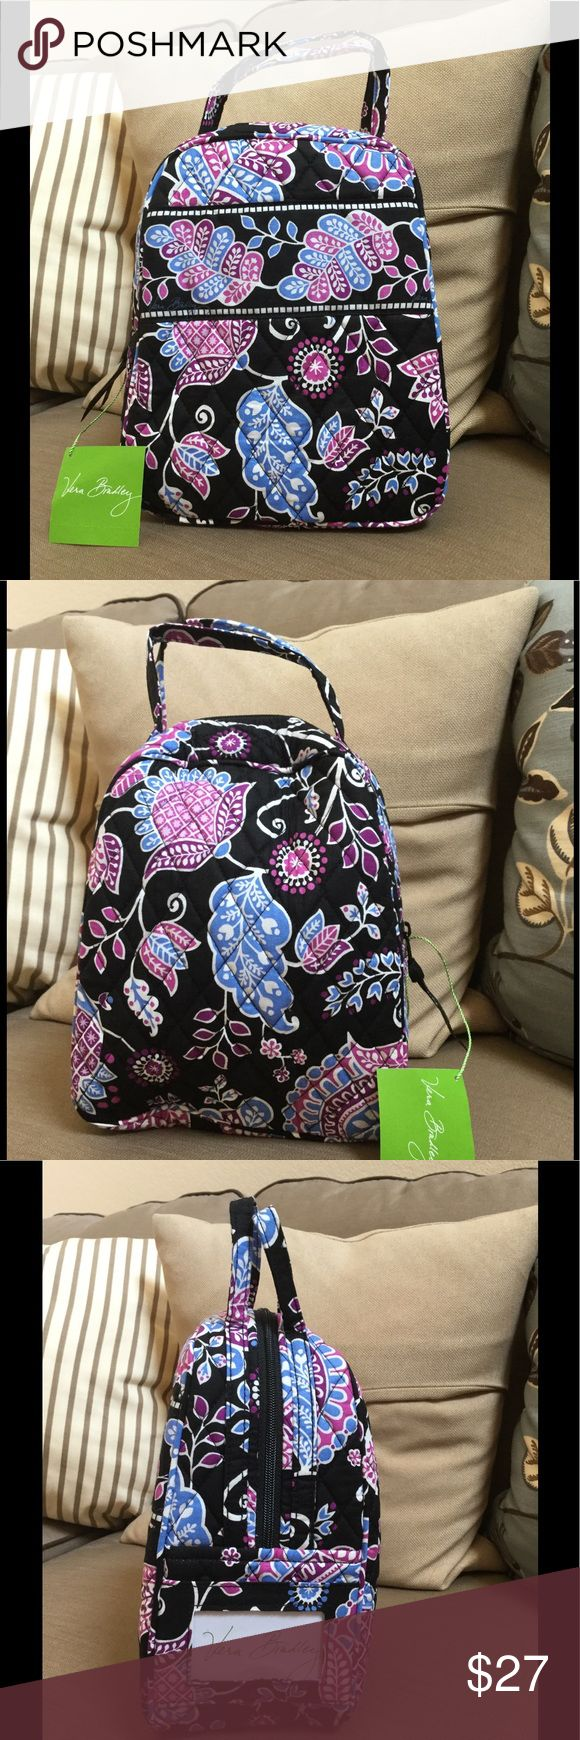 "NWT VERA BRADLEY LUNCH BAG NWT Vera Bradley Lunch Bunch  7 "" W x 9"" H x 4 "" D with 3"" handle drop  Alpine floral Pattern  Outside ID pocket Smoke/pet free home Vera Bradley Bags Cosmetic Bags & Cases"